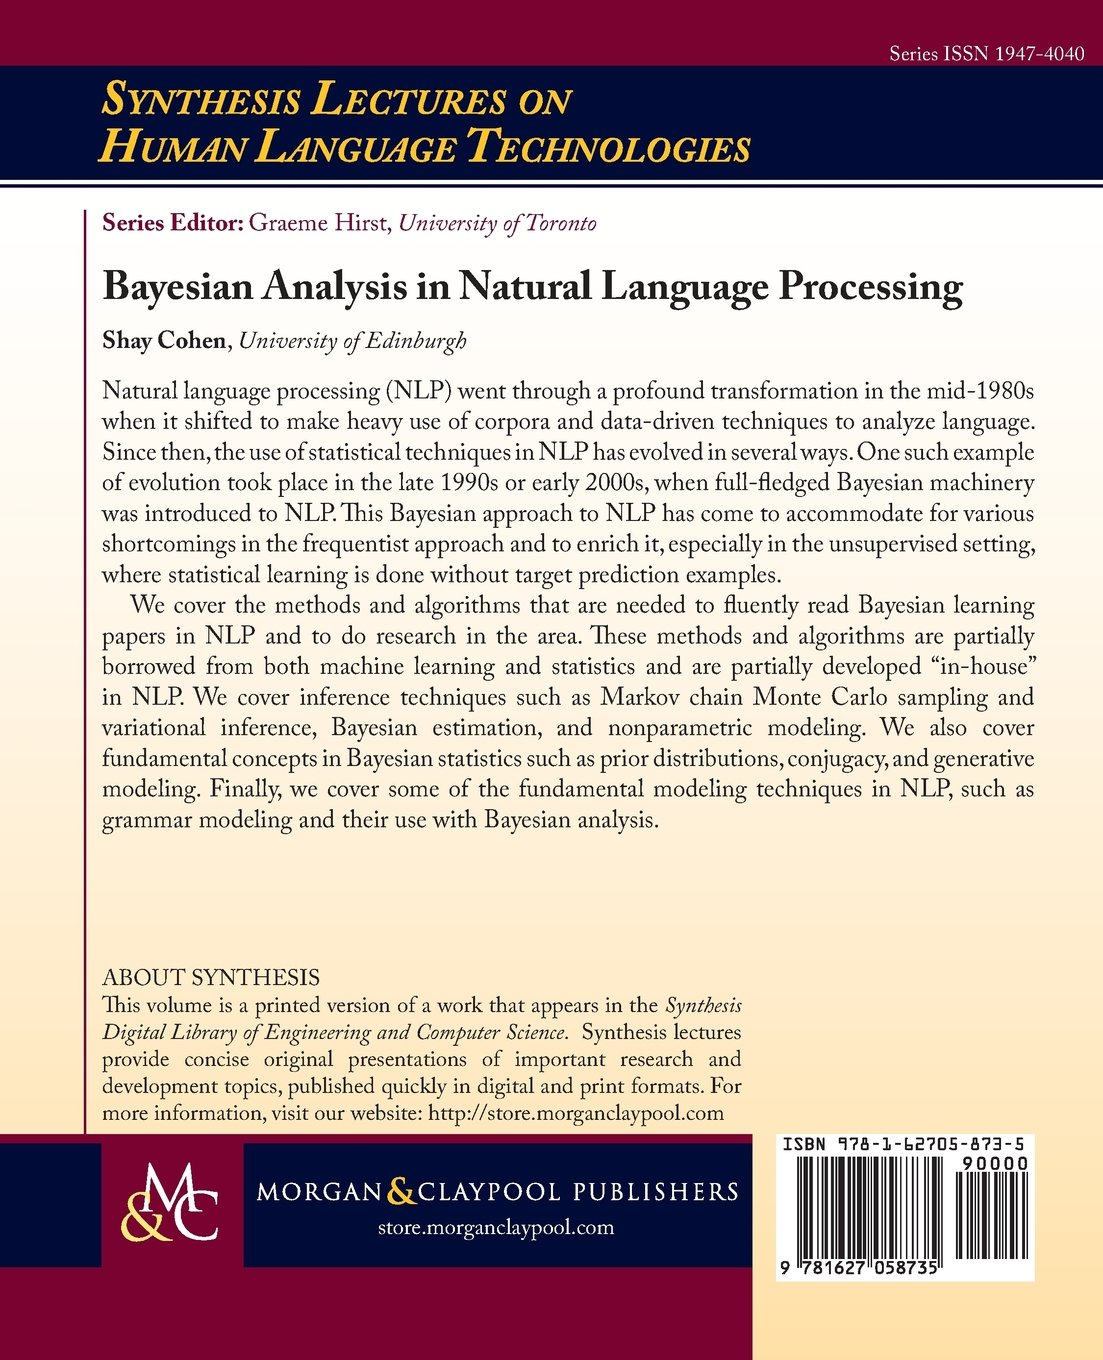 Bayesian Analysis in Natural Language Processing (Synthesis Lectures on Human Language Technologies) by Morgan & Claypool Publishers